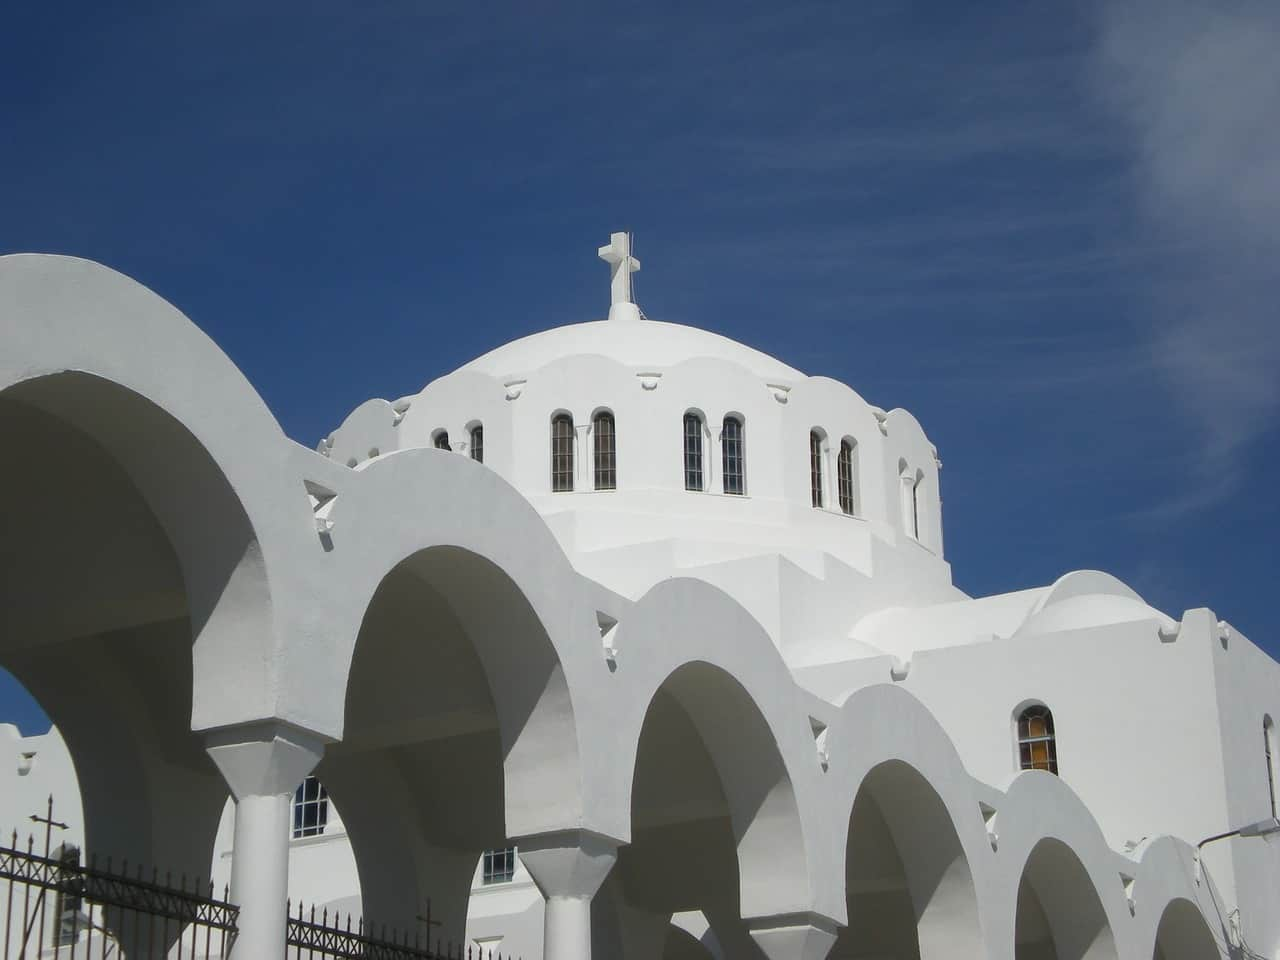 Orthodox Metropolitan Cathedral, santorini, Greece